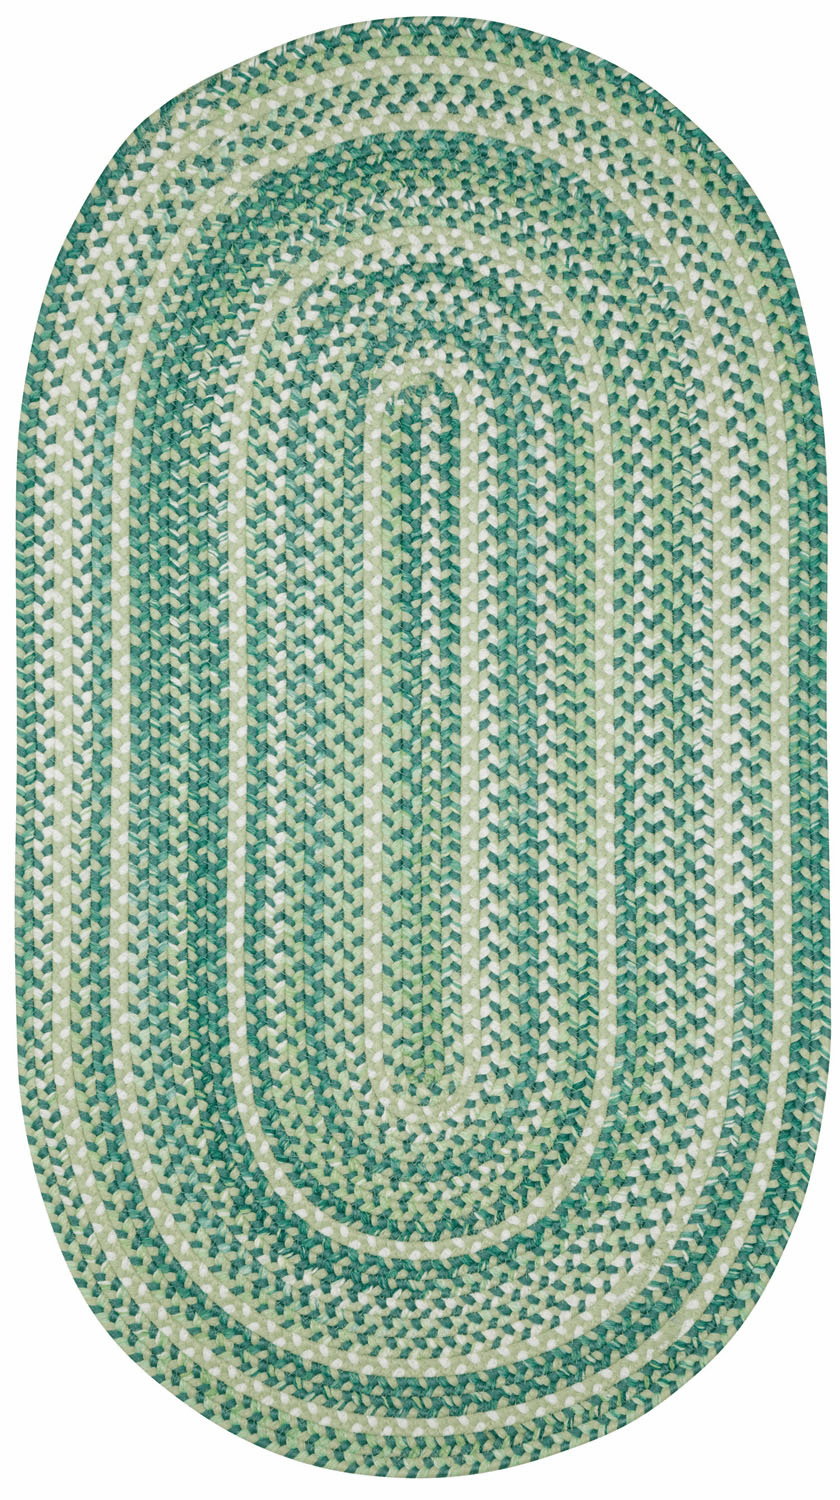 Hand-Braided Green Rug